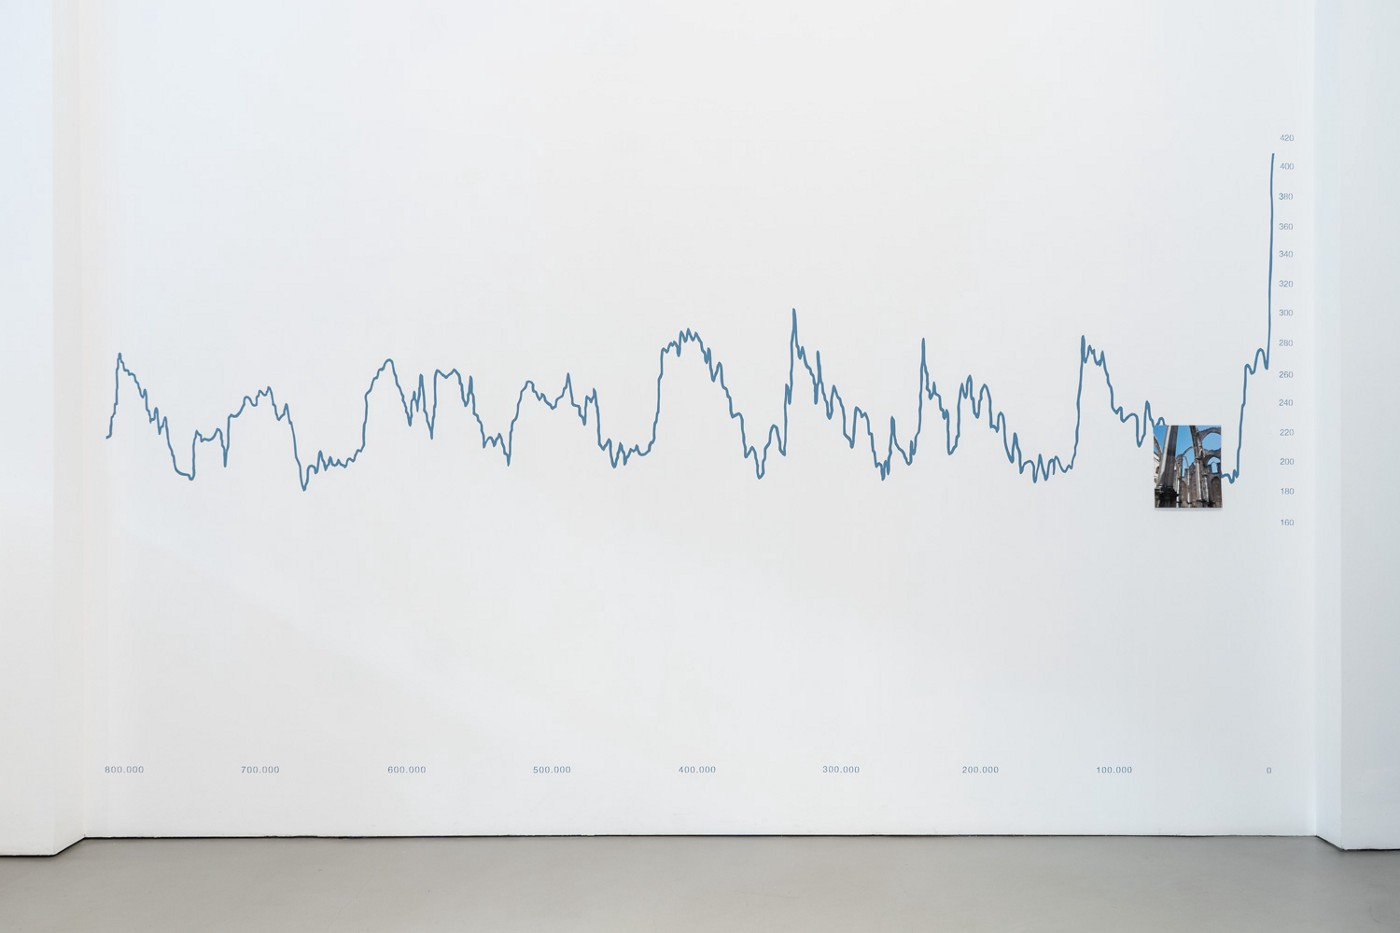 A graph painted on a white wall. The line that traces the carbon dioxide density spikes drastically towards the end of the graph.